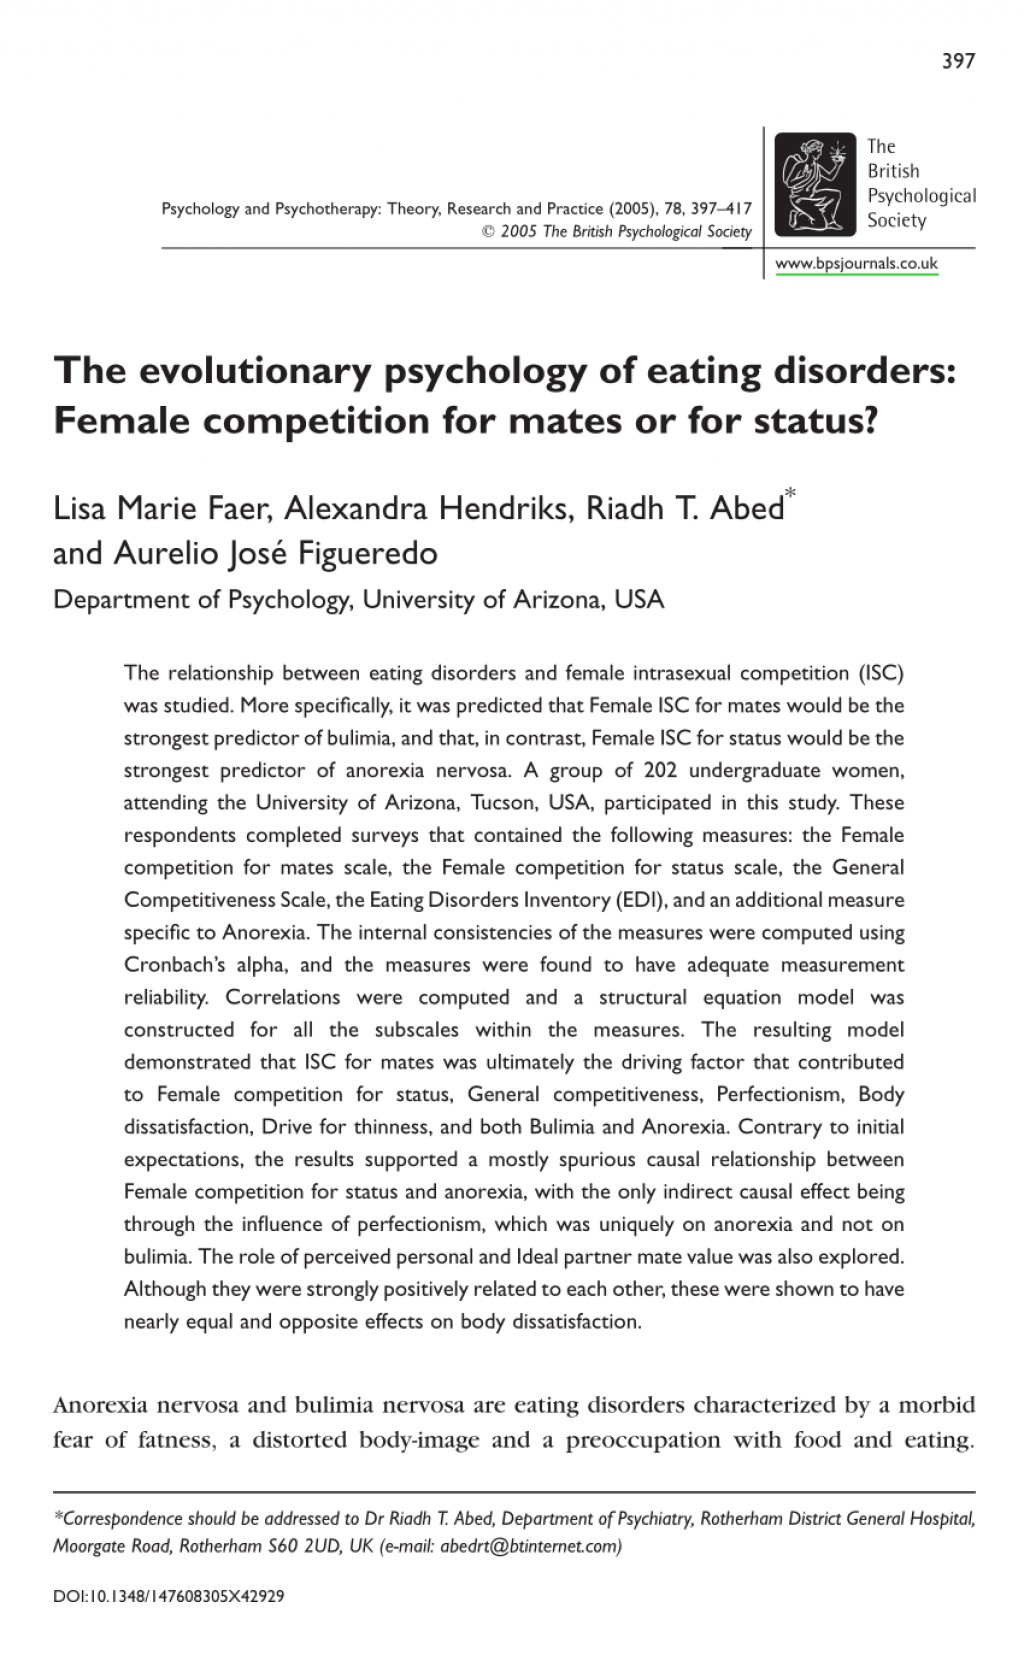 006 Psychology Research Paper On Eating Disorders Top Study Psychological Into Topics Large